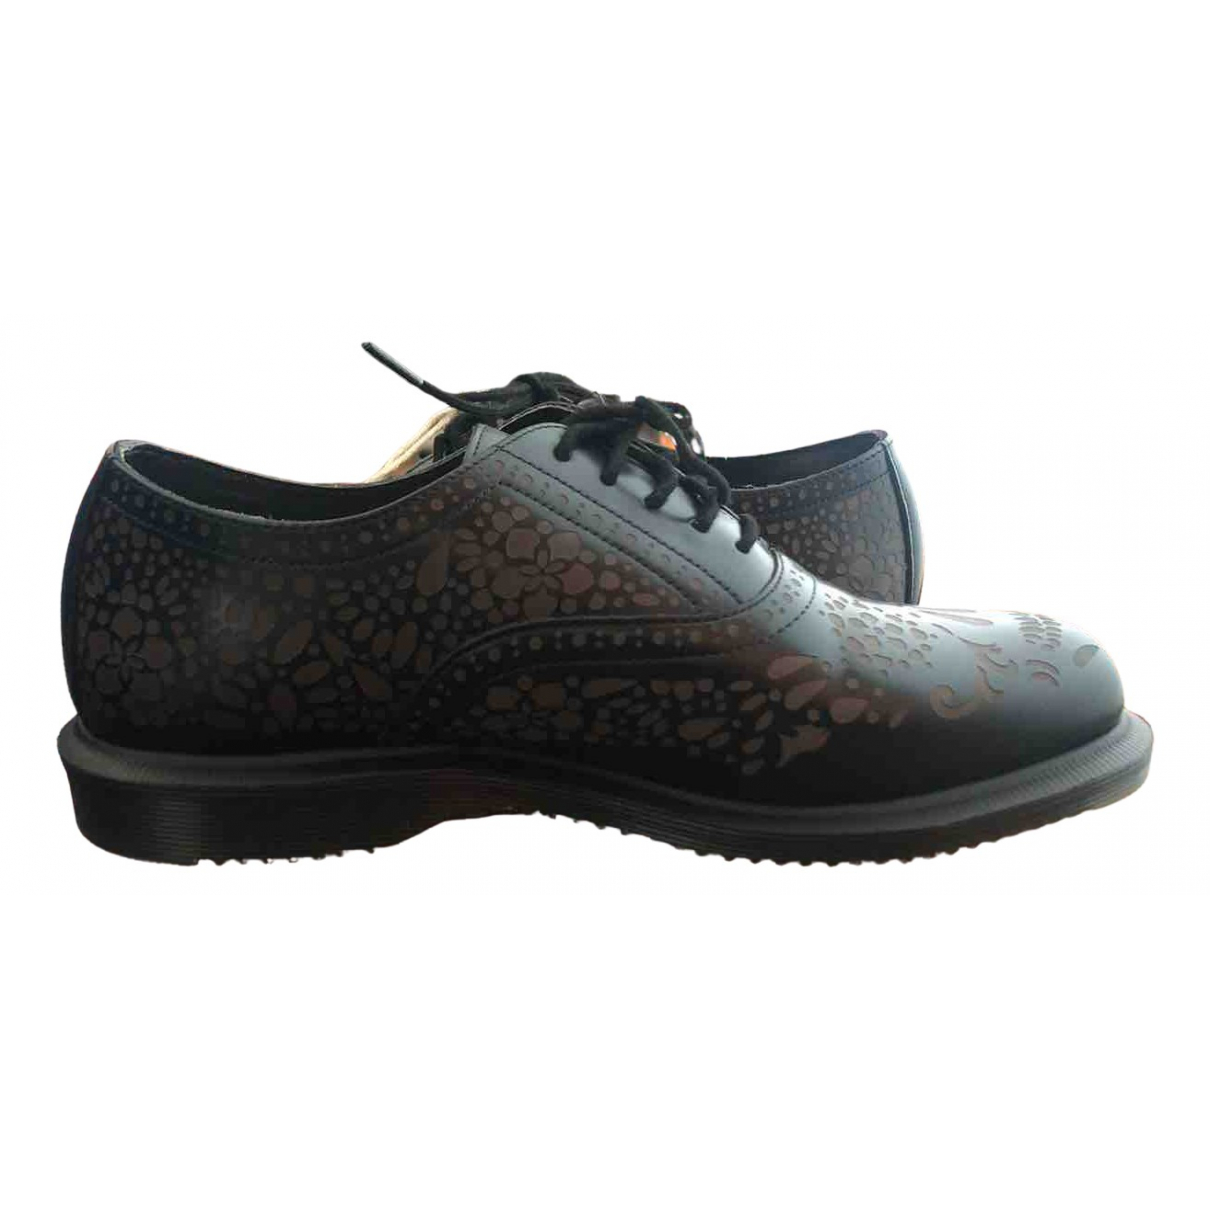 Dr. Martens 3989 (Brogue) Black Rubber Lace ups for Women 6.5 UK